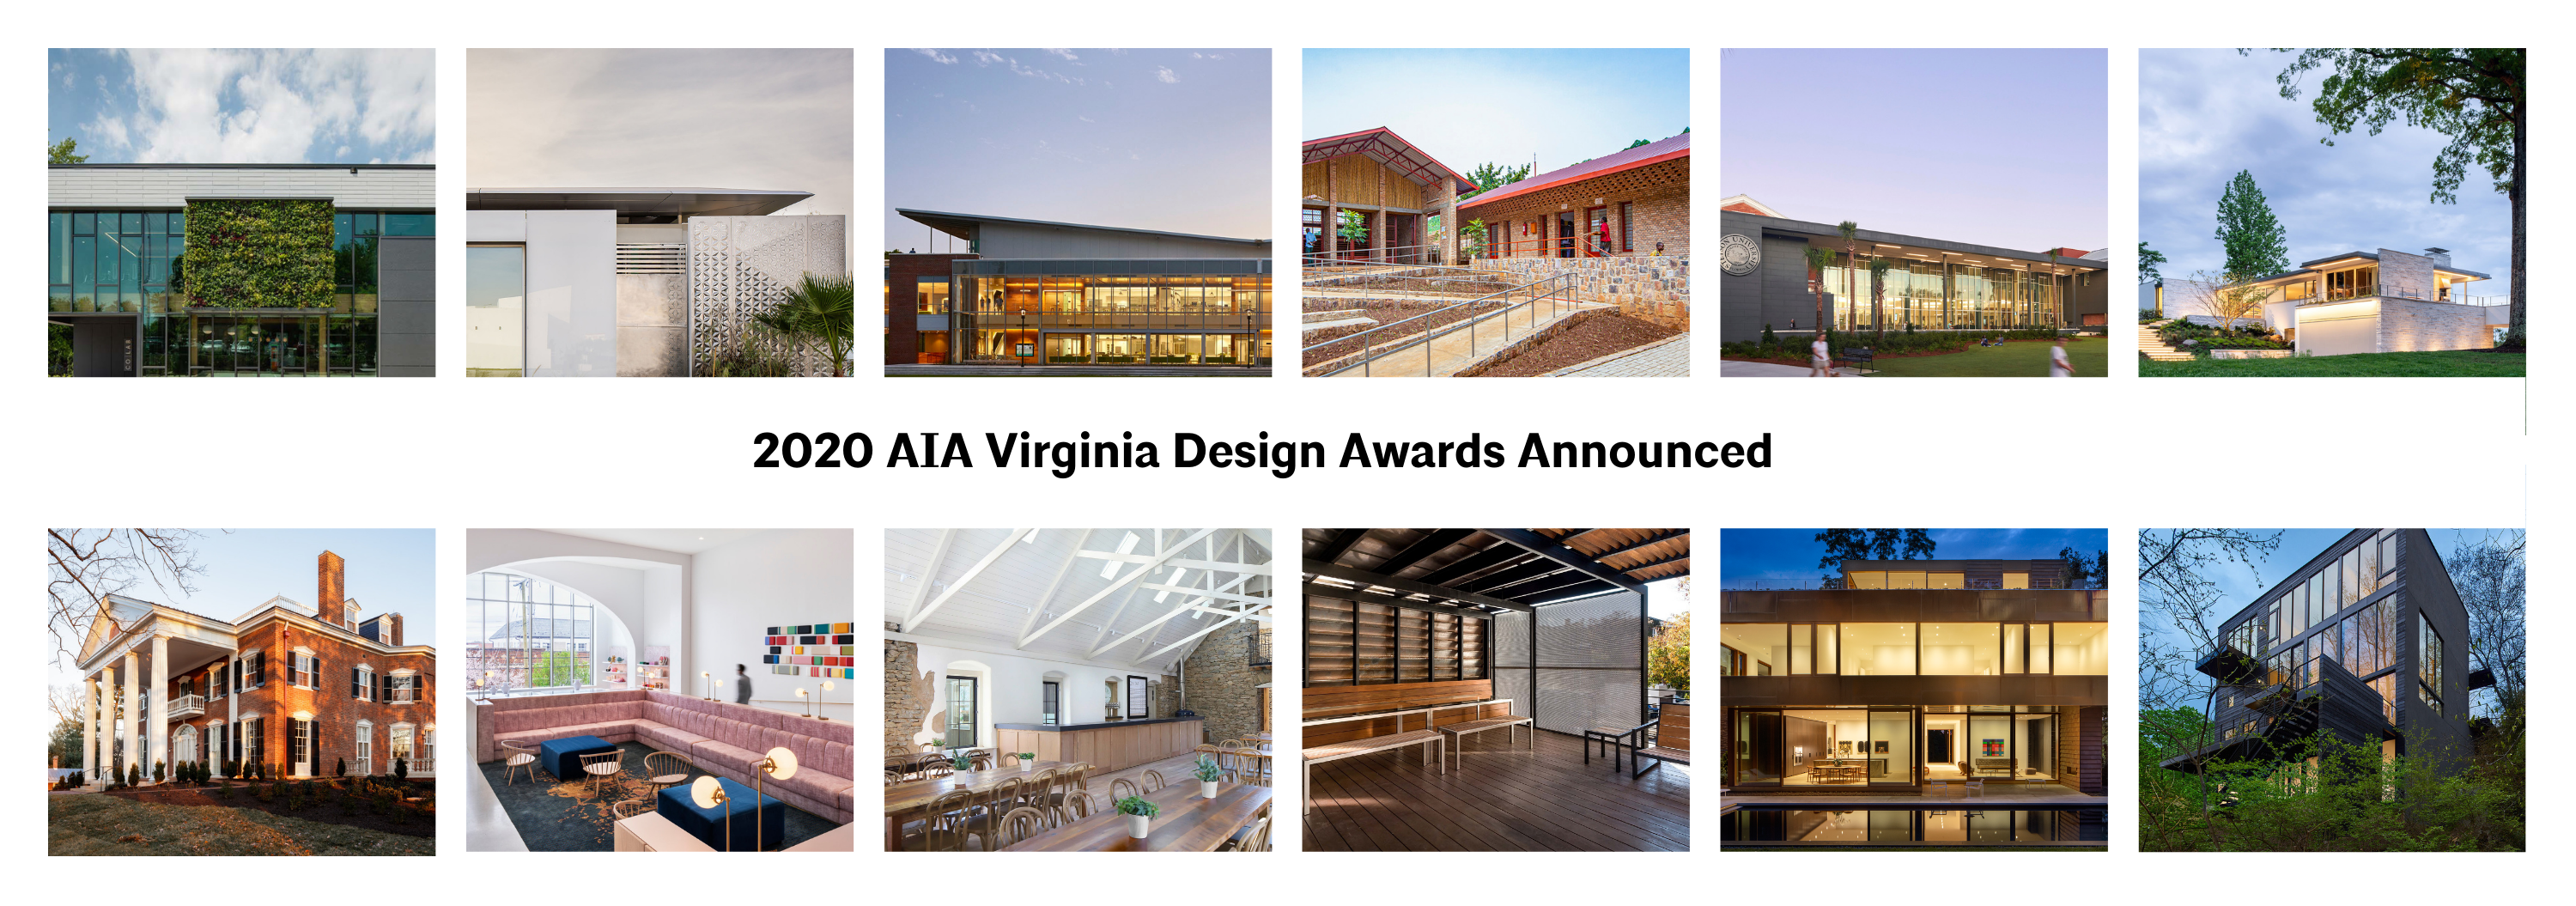 2020 Design Awards Announced